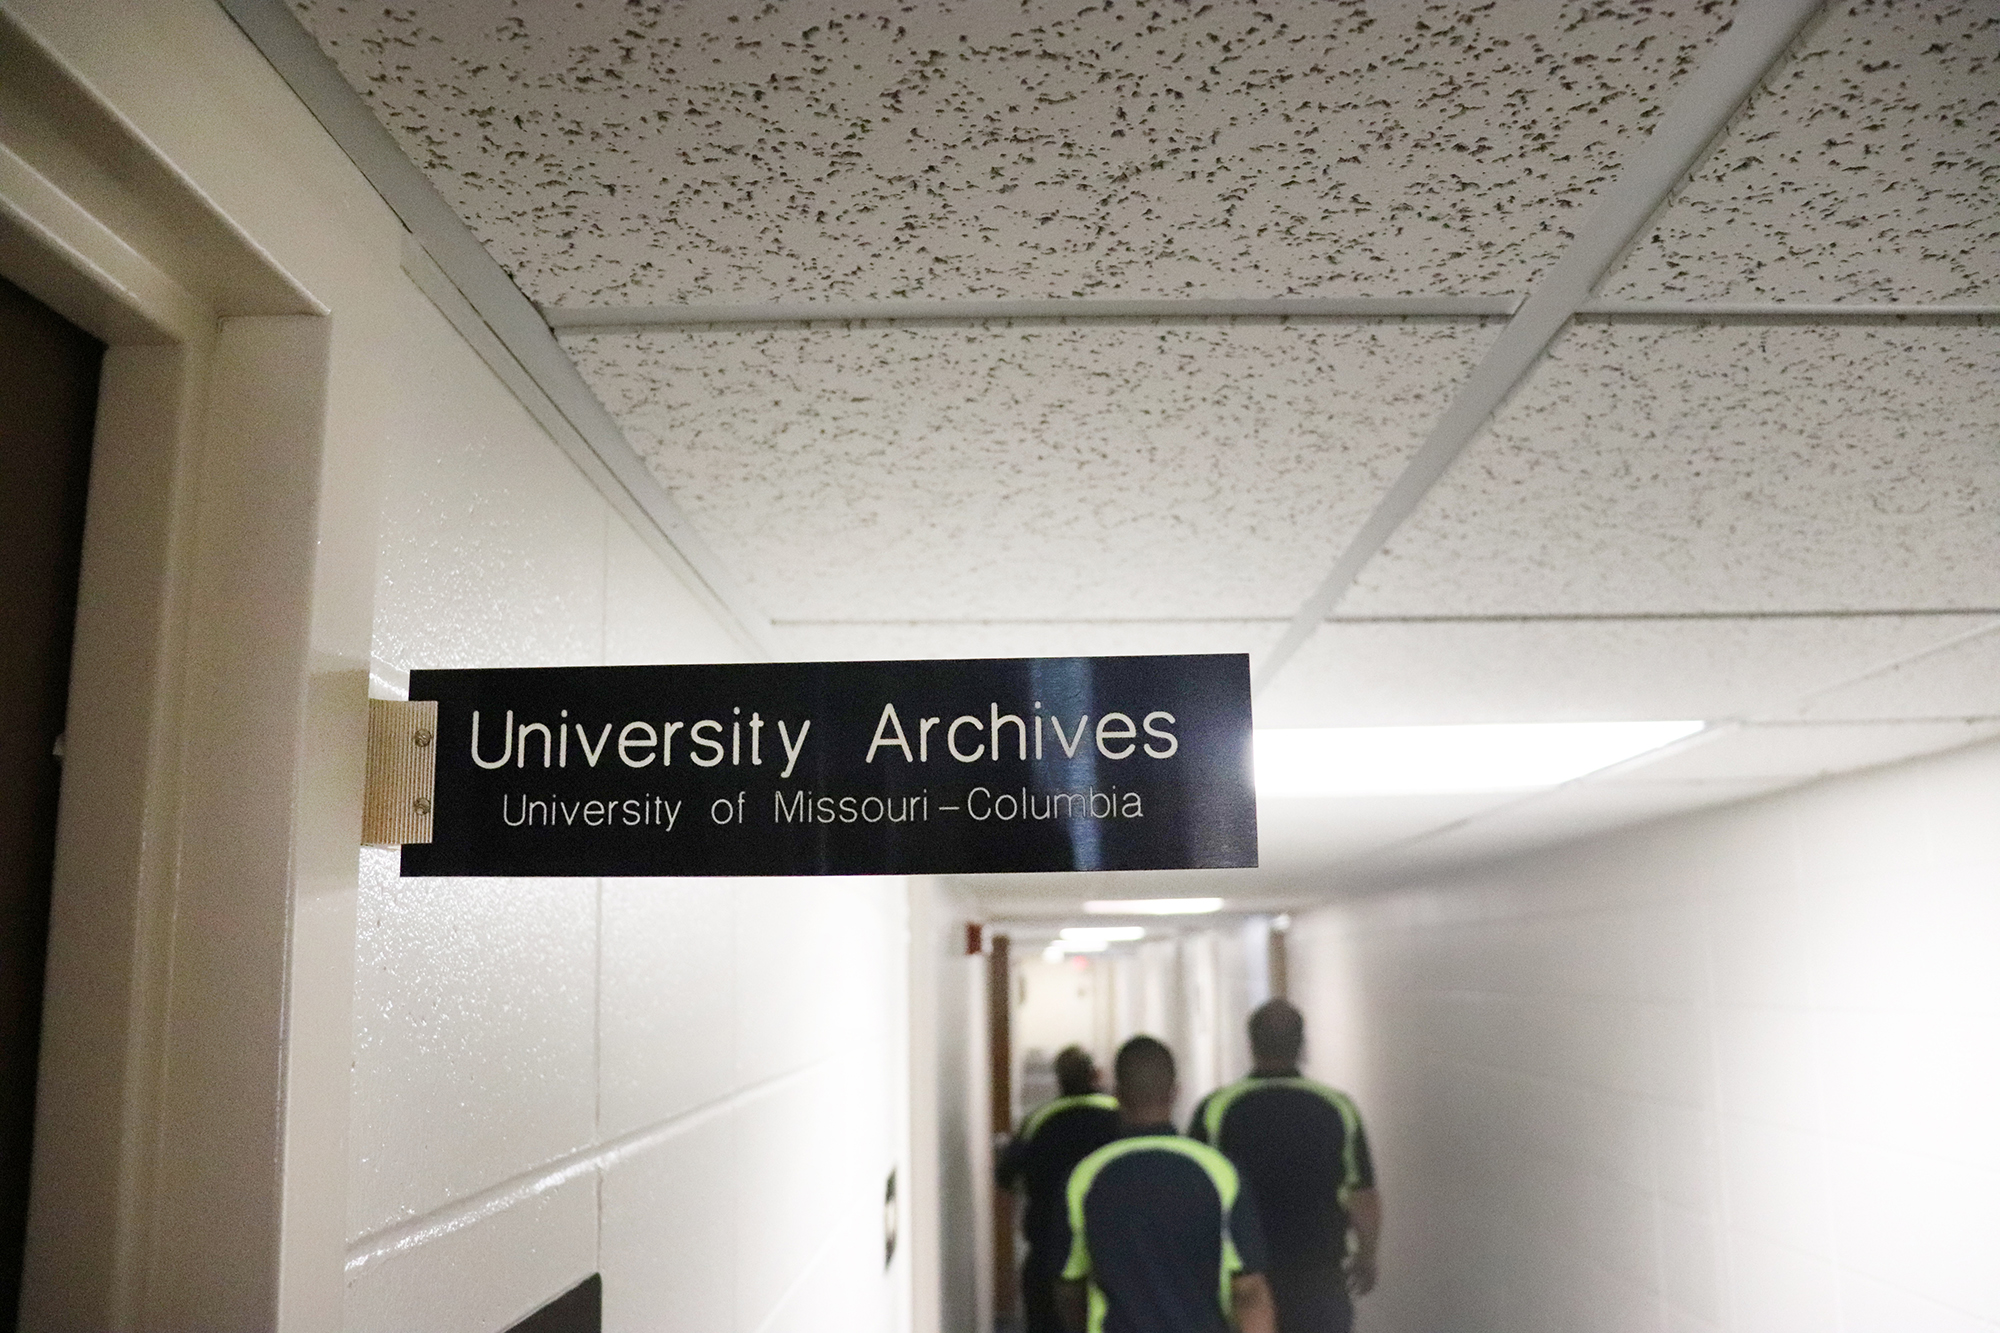 university archives sign in a building